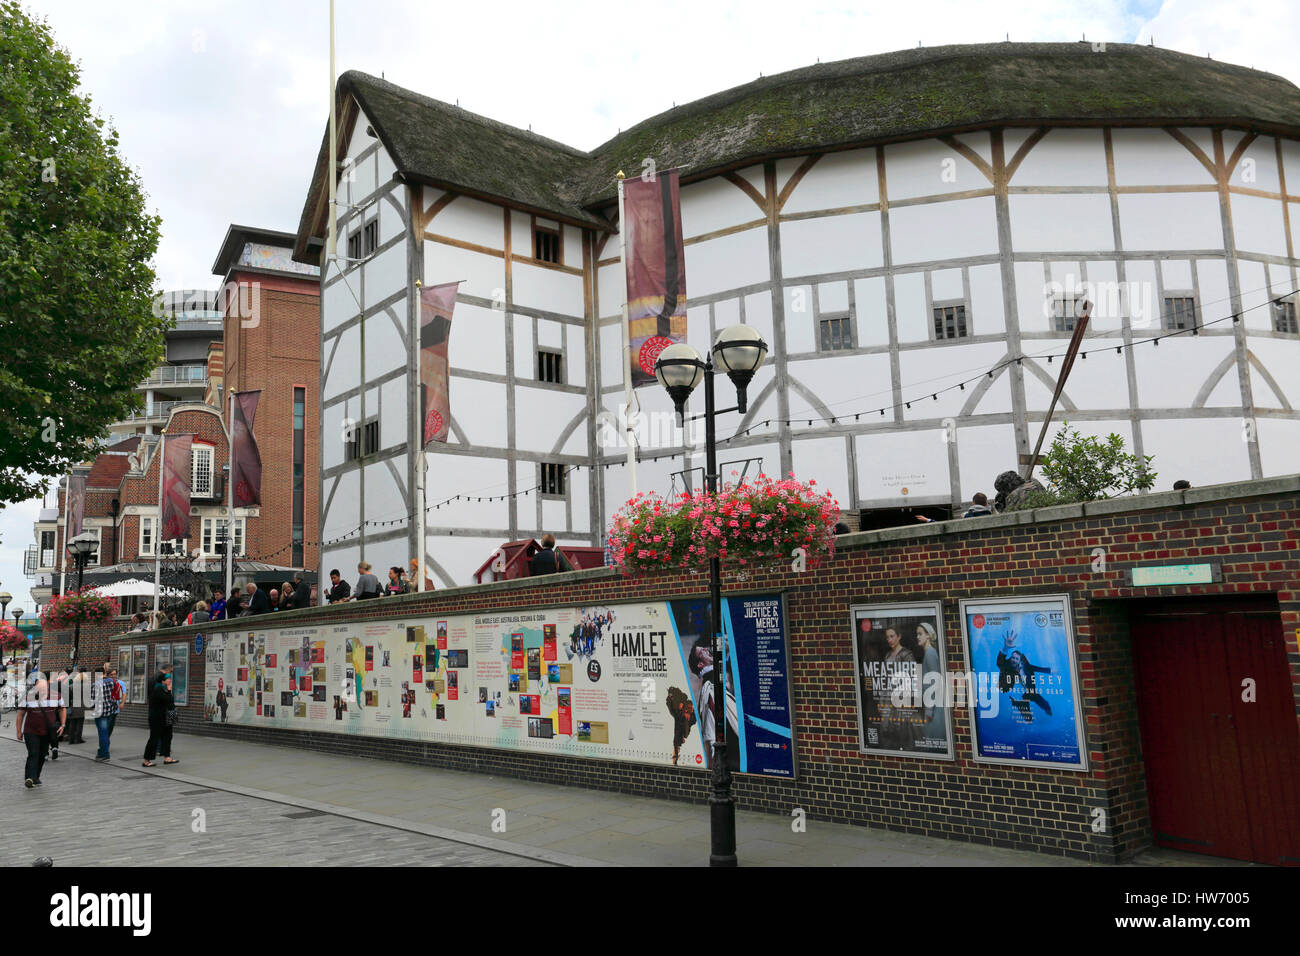 Shakespeares Globe Theatre, Bankside, Southwark, South Bank, London City, England, United Kingdom - Stock Image